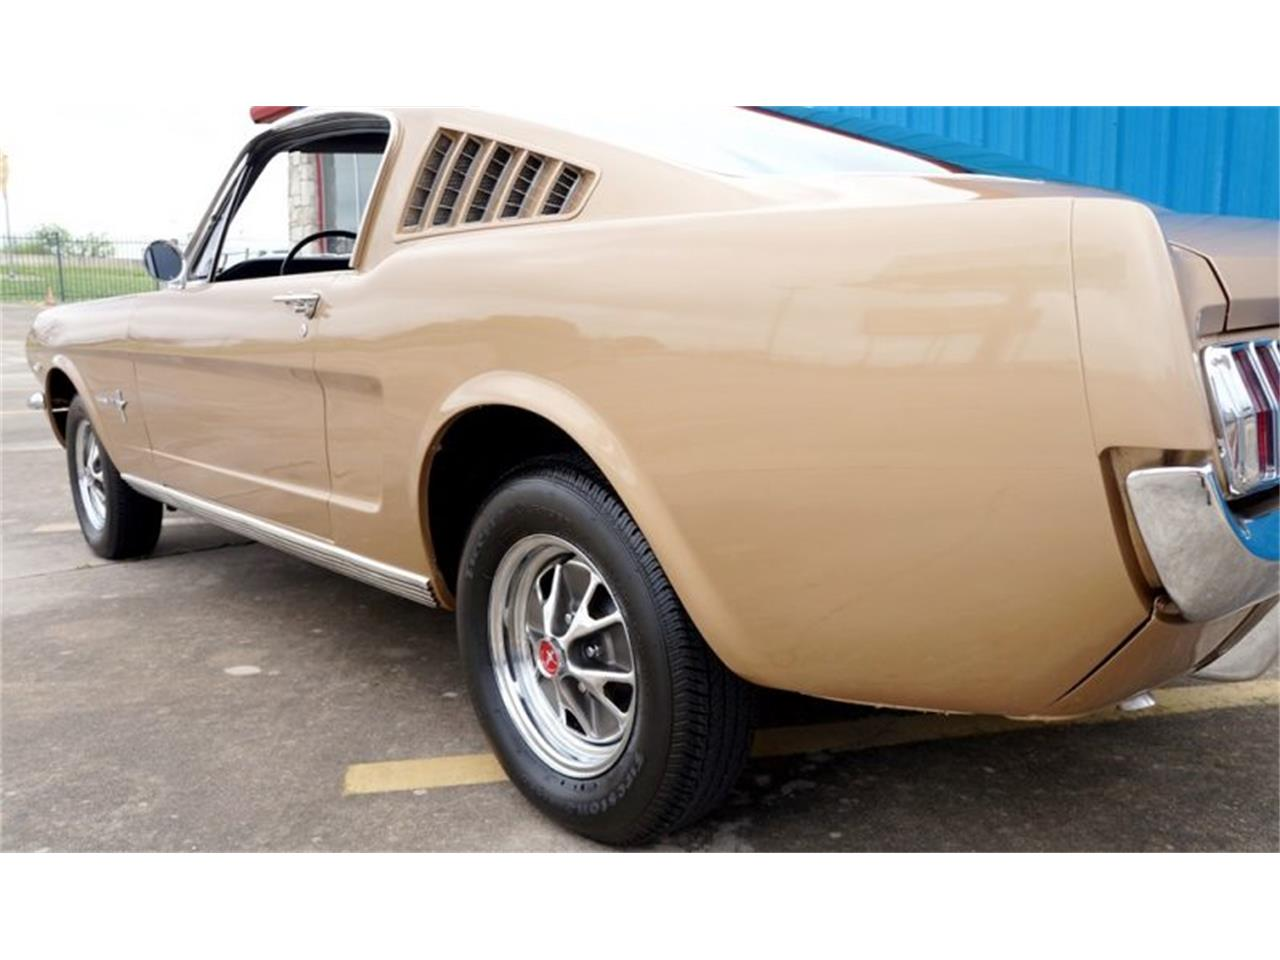 Large Picture of Classic '65 Ford Mustang located in Indiana - $37,500.00 Offered by a Private Seller - Q6QR